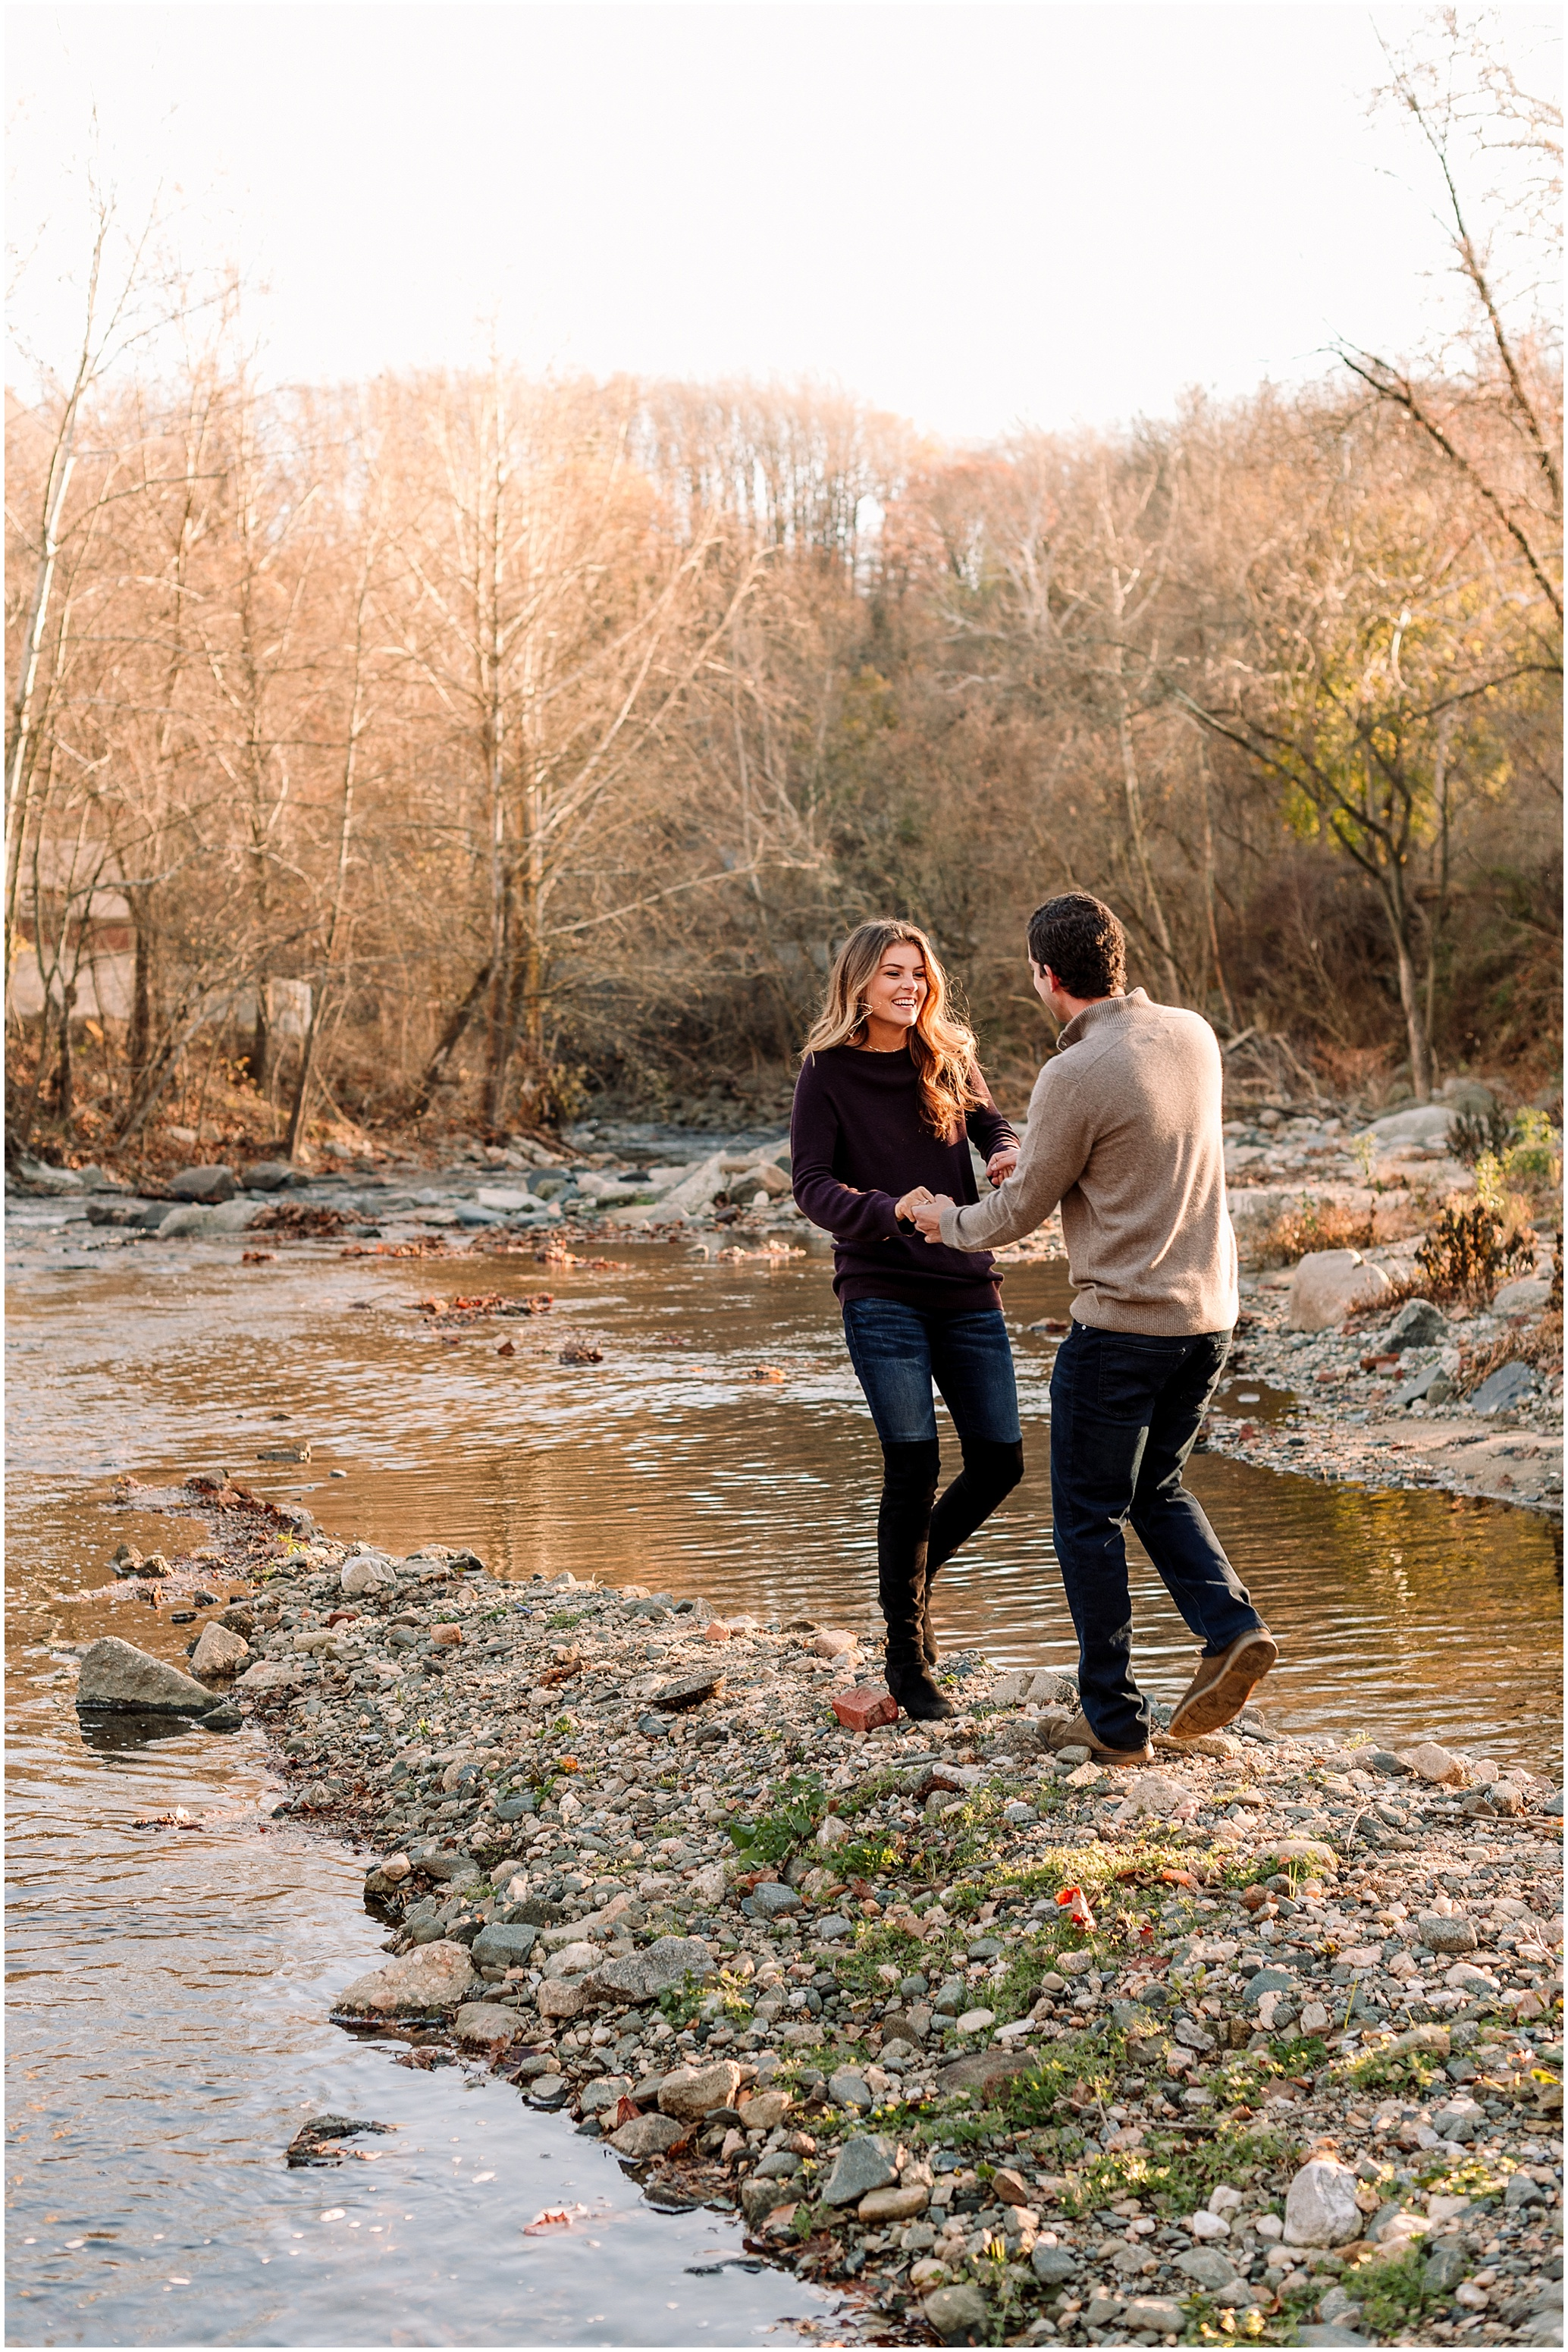 Hannah Leigh Photography Ellicott City MD Engagement Session_6932.jpg